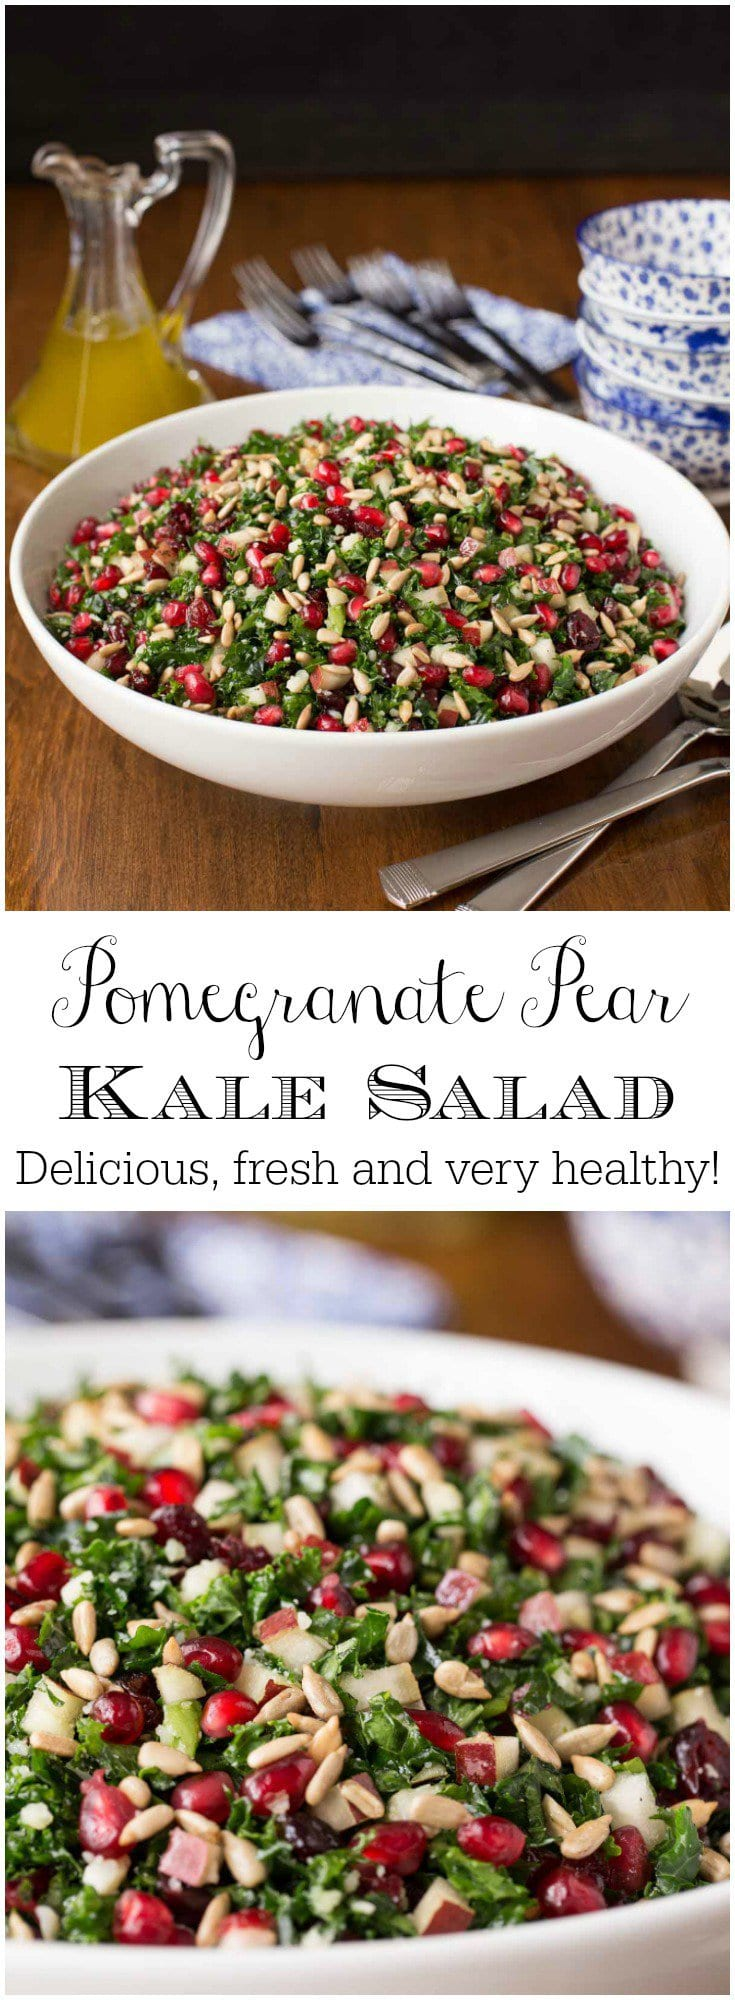 This delicious Pomegranate Pear Kale Salad is loaded with fresh, healthy ingredients. The simple, vibrant lemon dressing ties it all together.